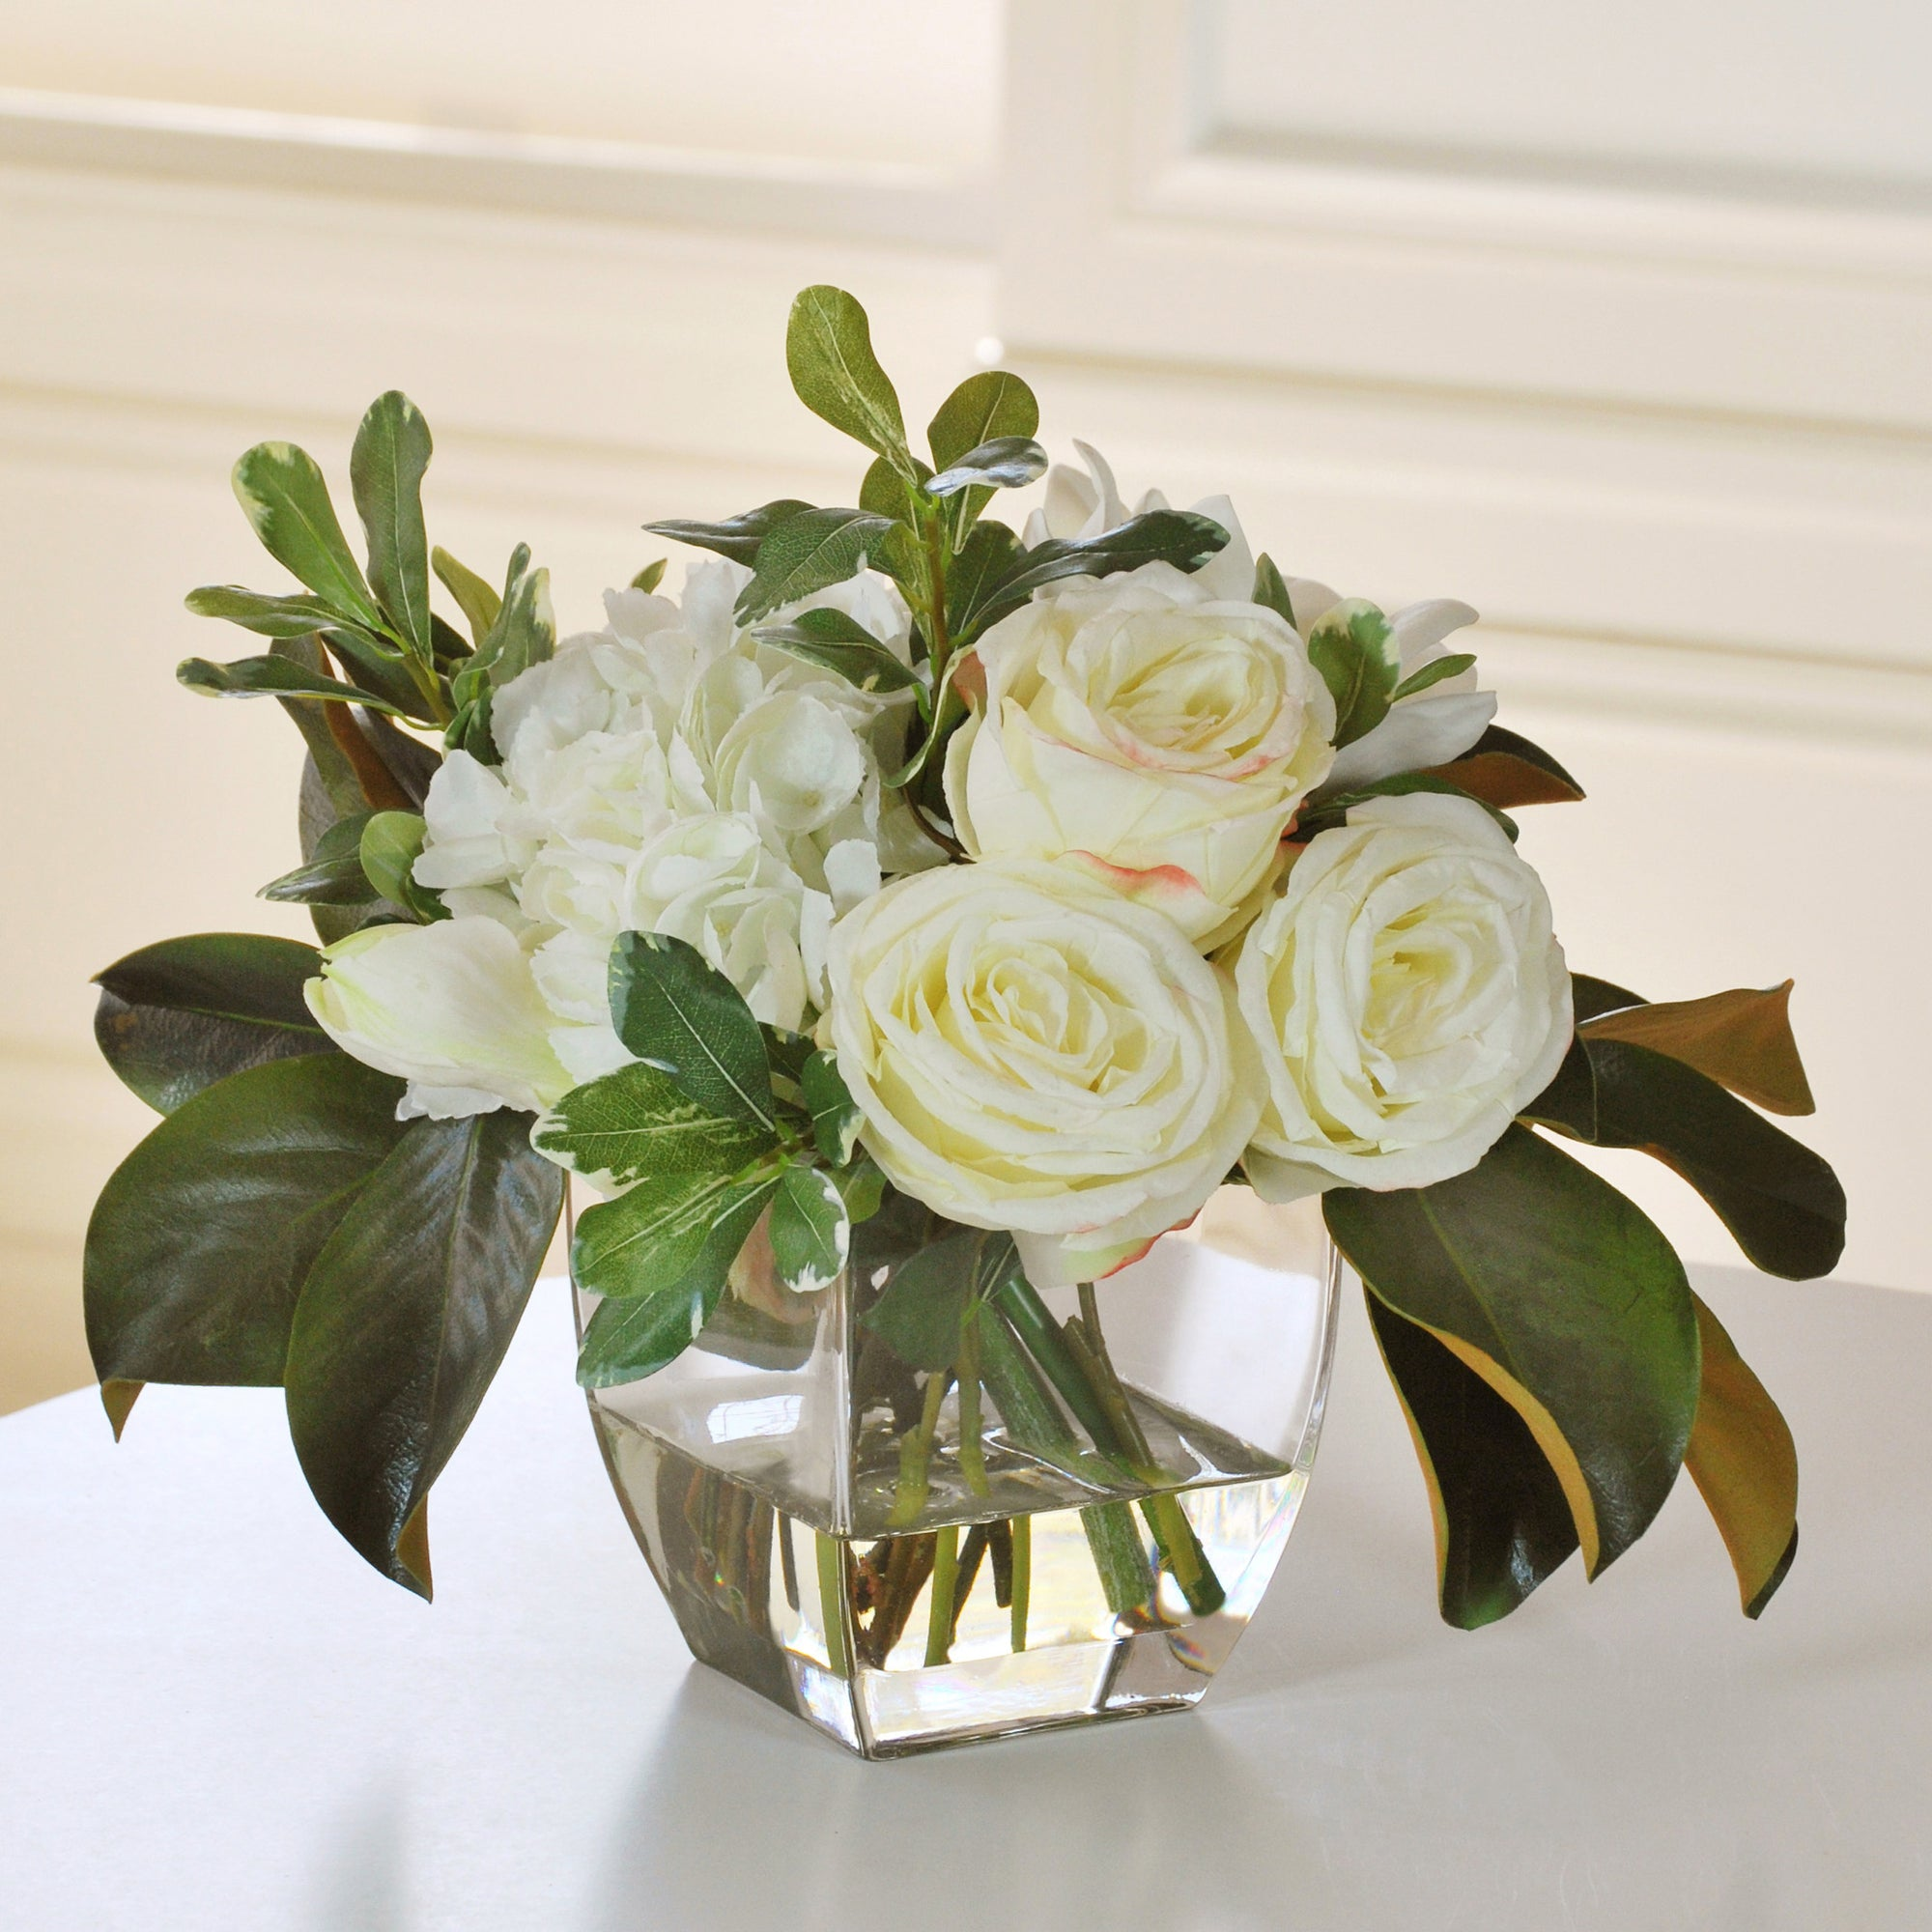 SIGNATURE ROSE AND HYDRANGEA (WHDP147-WHGR) - Winward Home faux floral arrangements